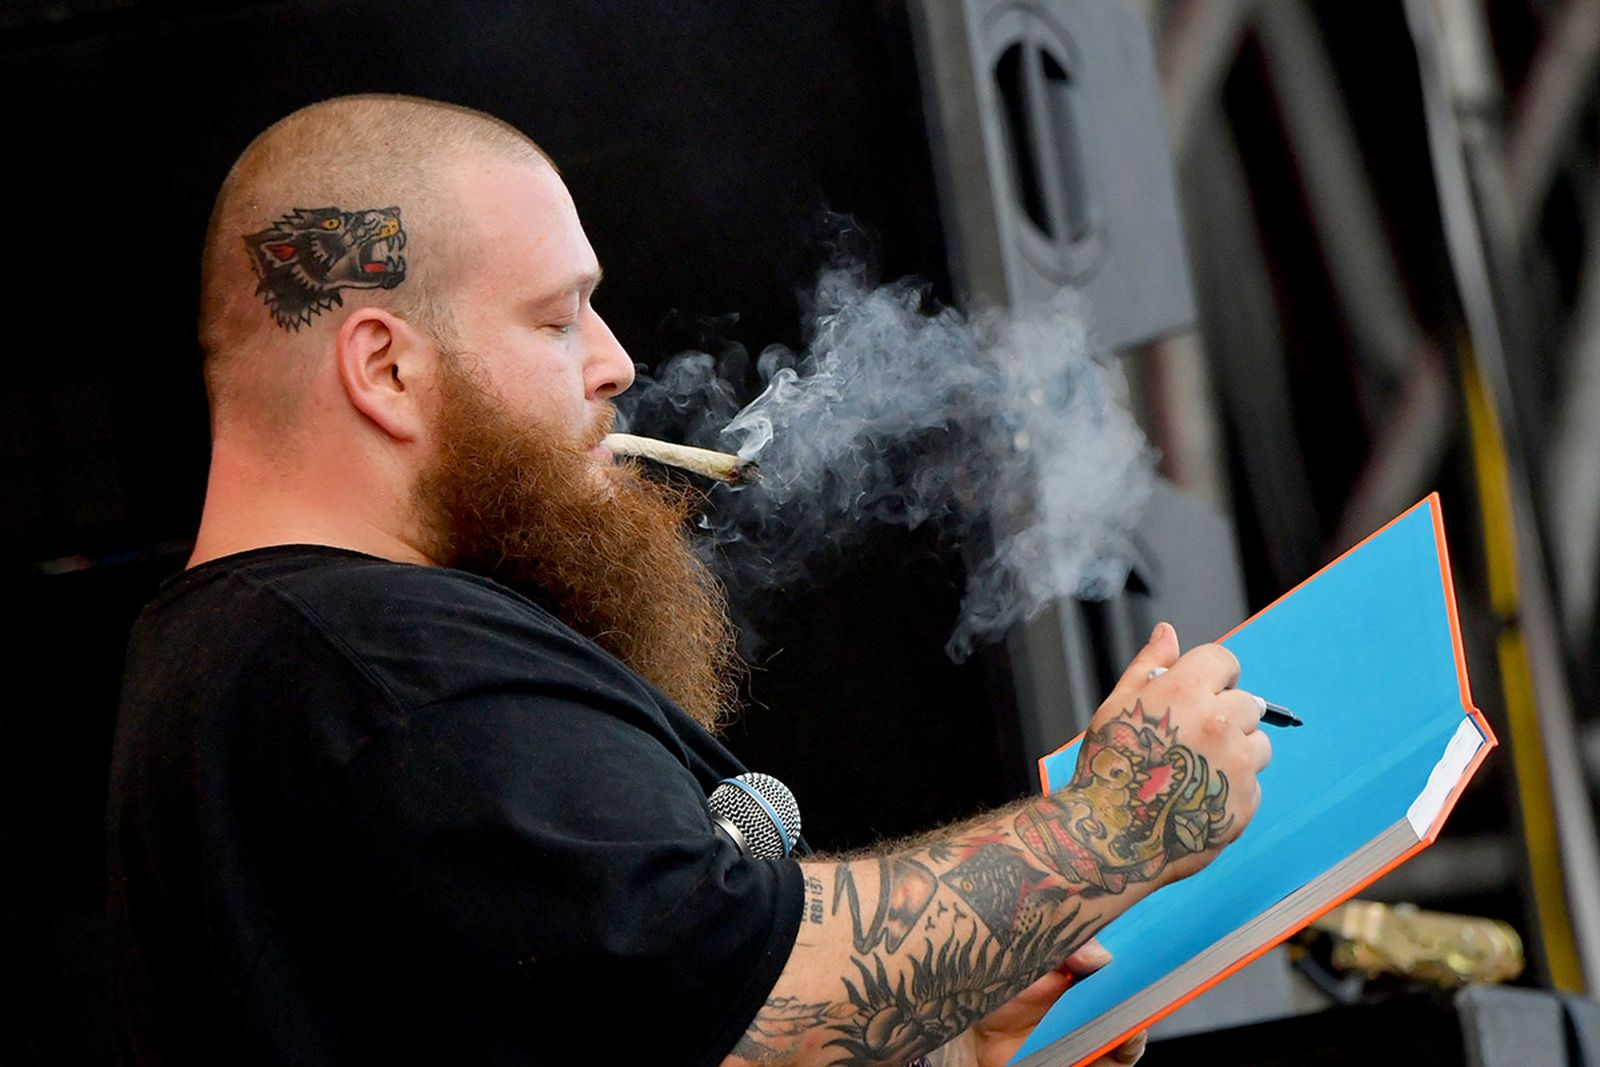 Stoned Beyond Belief action bronson